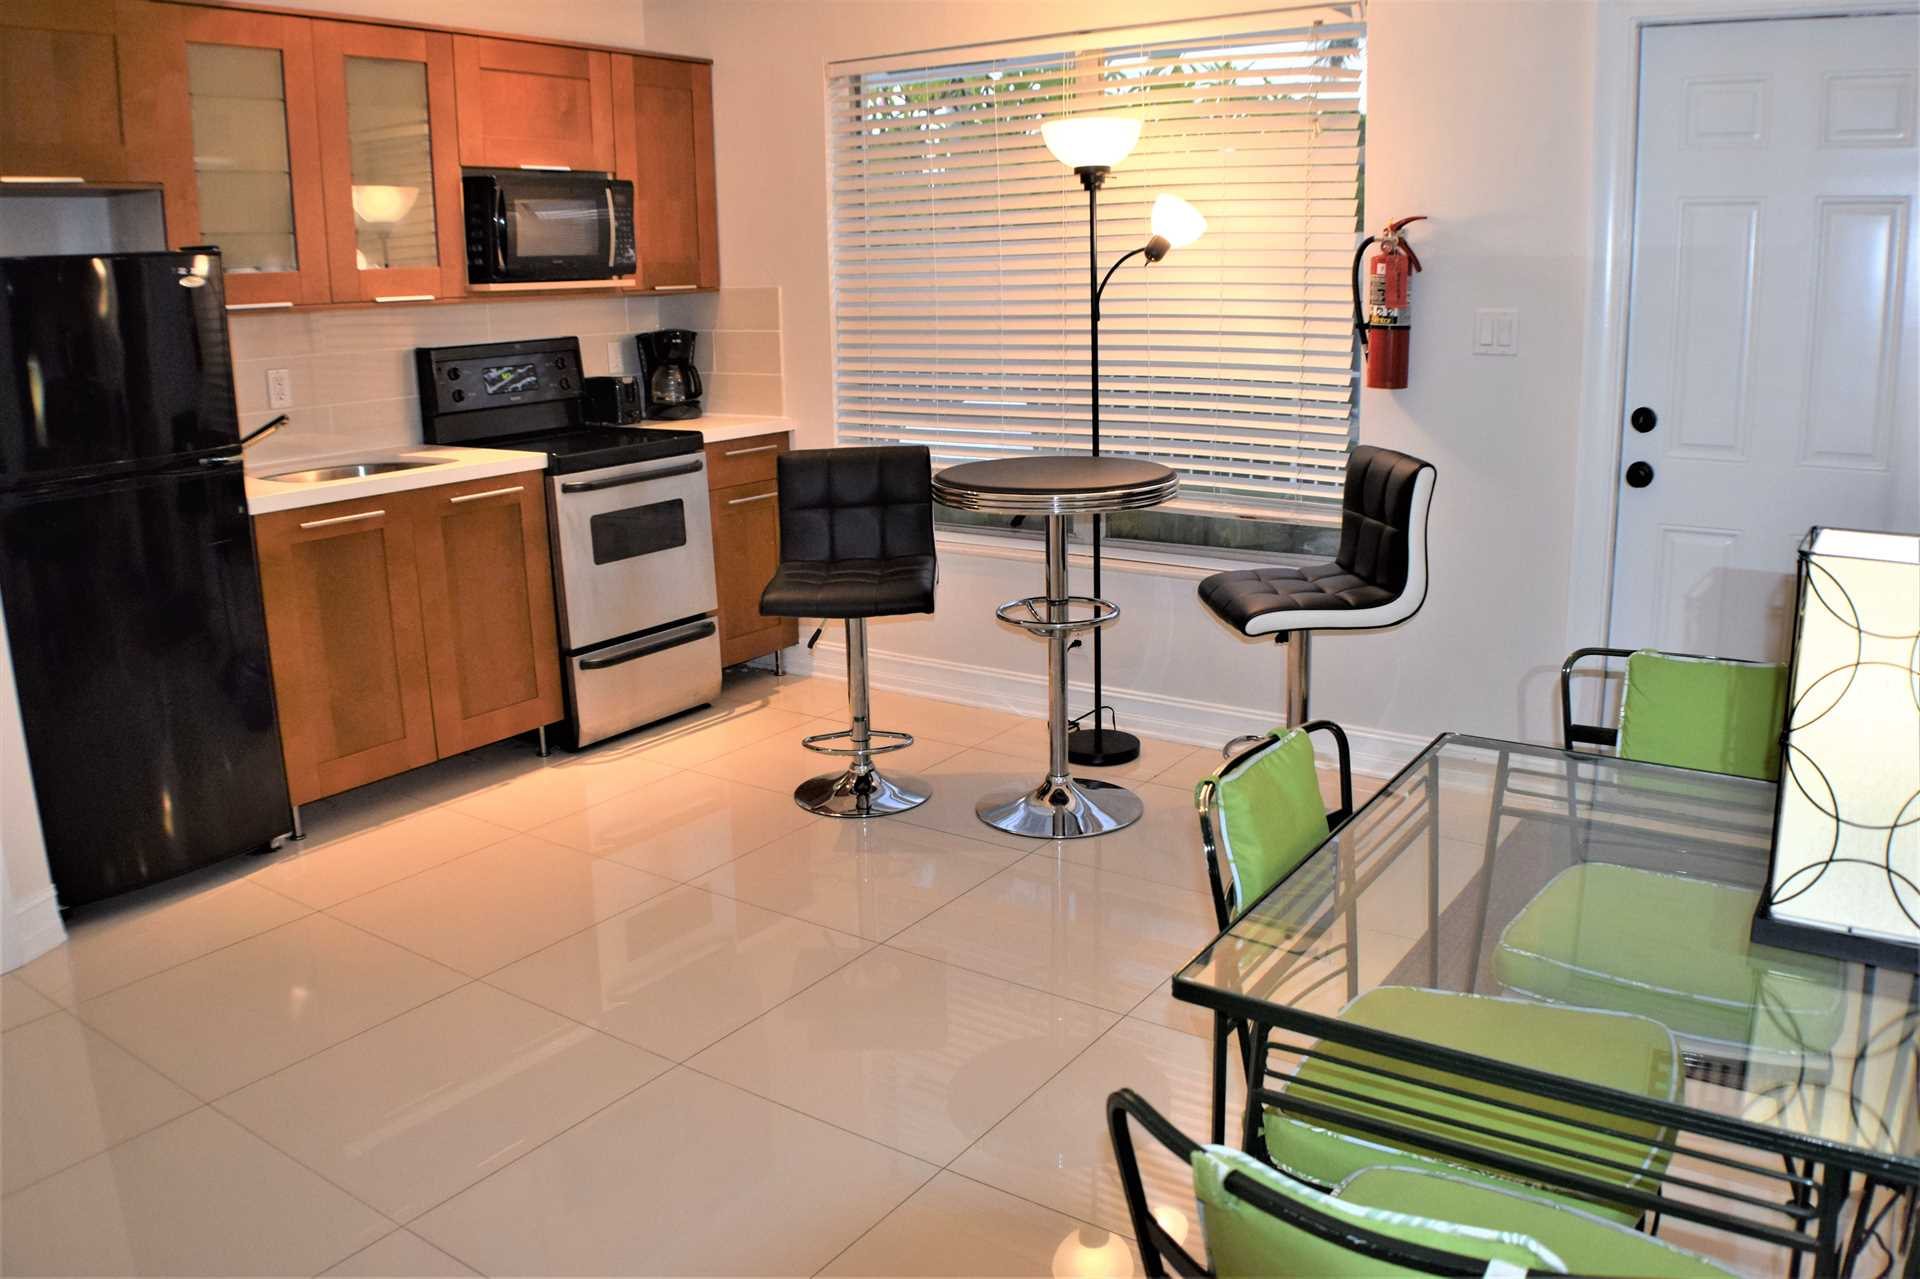 Kitchen area also has full set of cooking and dining impleme